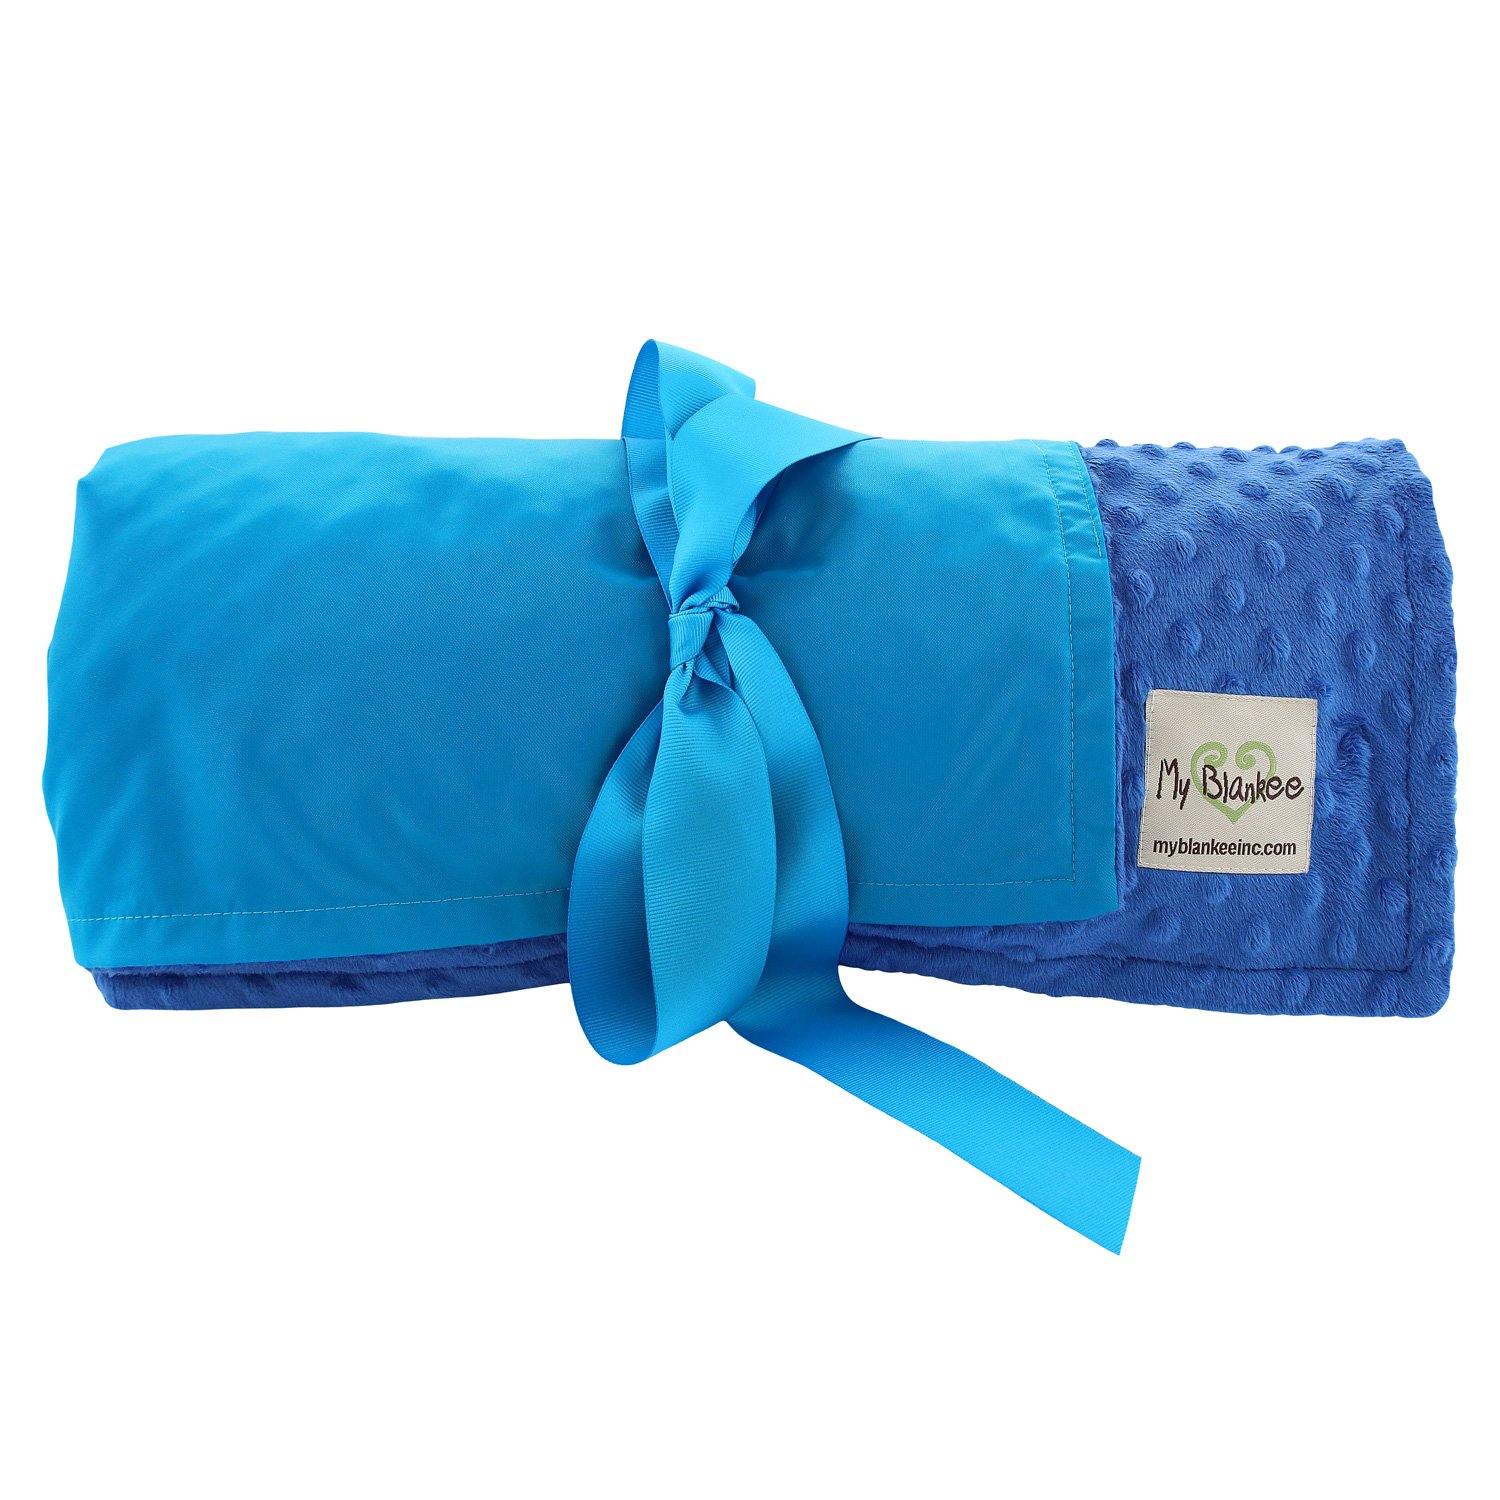 My Blankee Extra Large Picnic & Outdoor Blanket Warm and Soft Minky Dot with Waterproof Backing, Royal Blue, 59'' X 85''